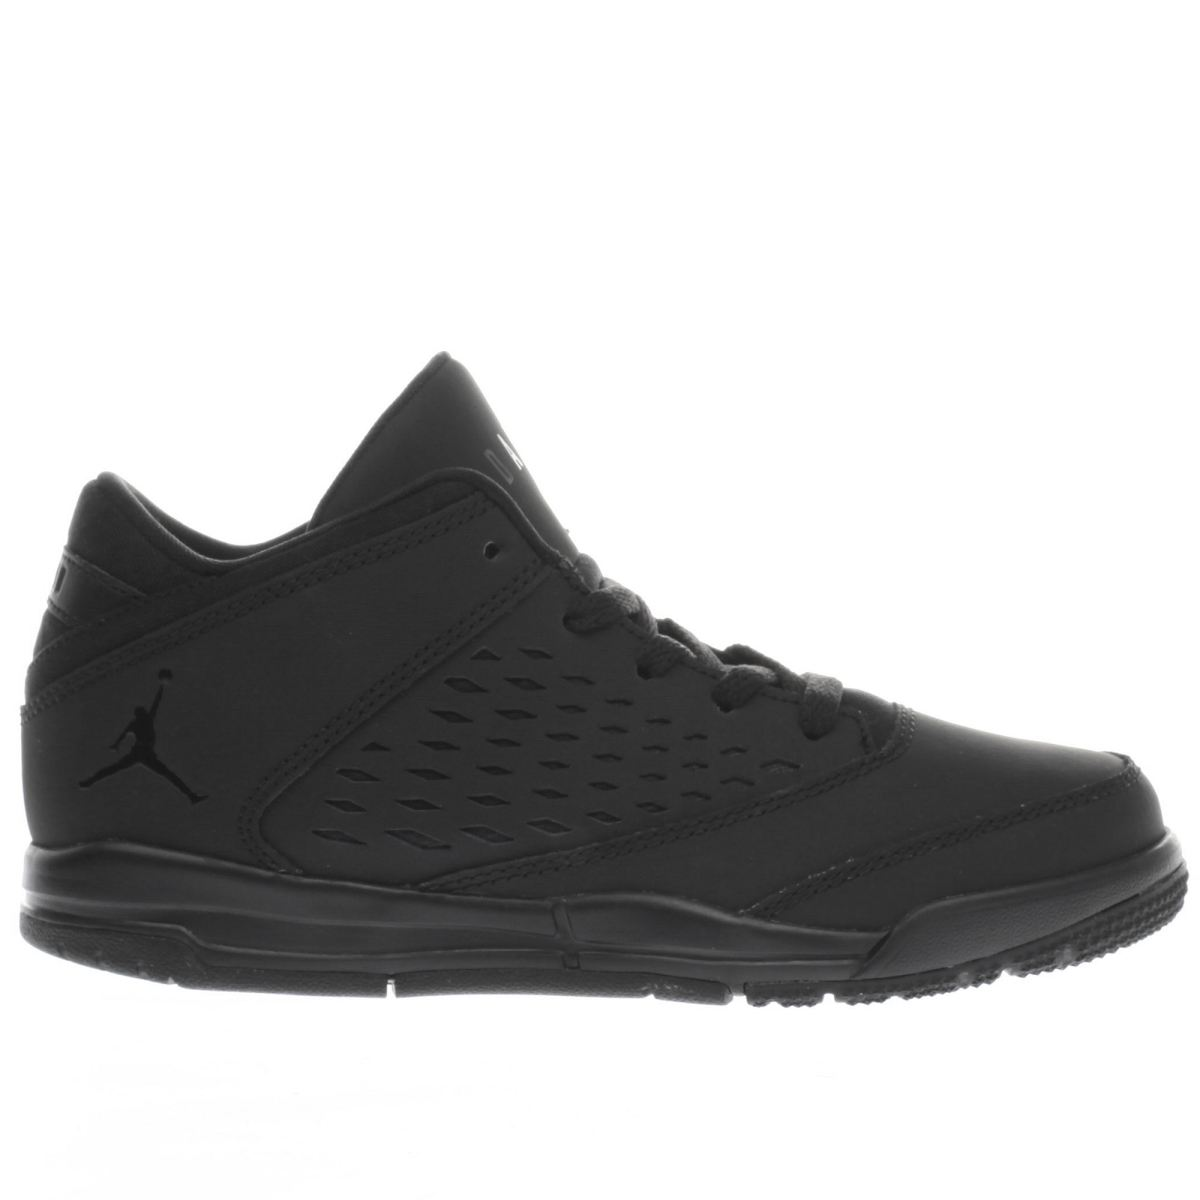 nike jordan black flight origin 4 Junior Trainers